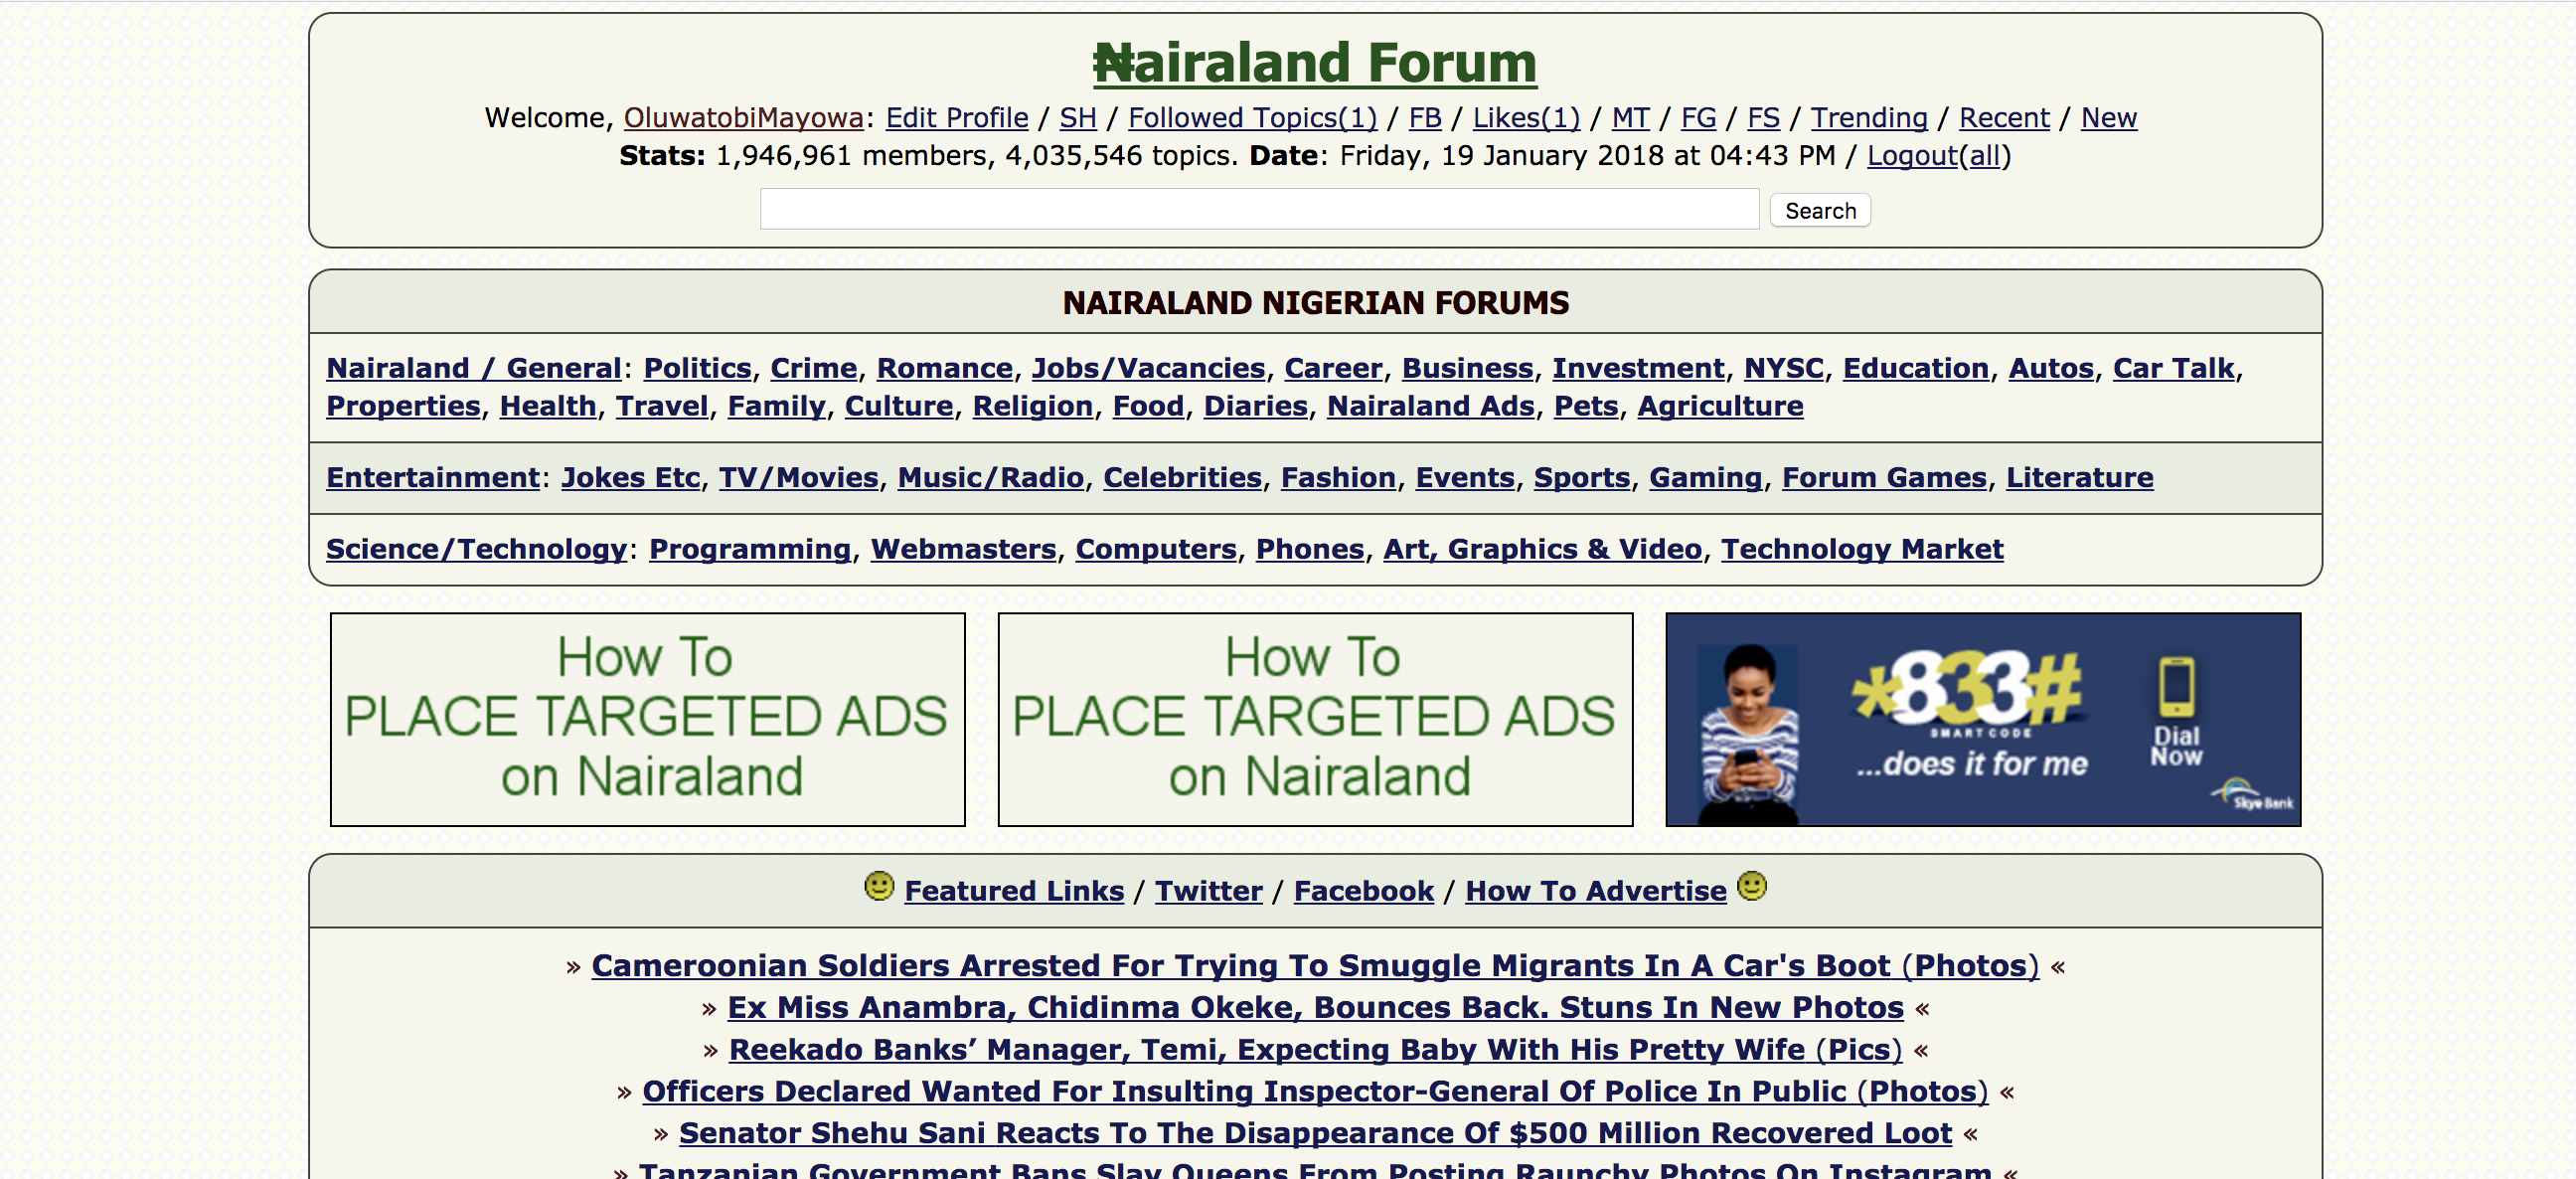 What is the Future of Nairaland's UX? - Oluwatobi